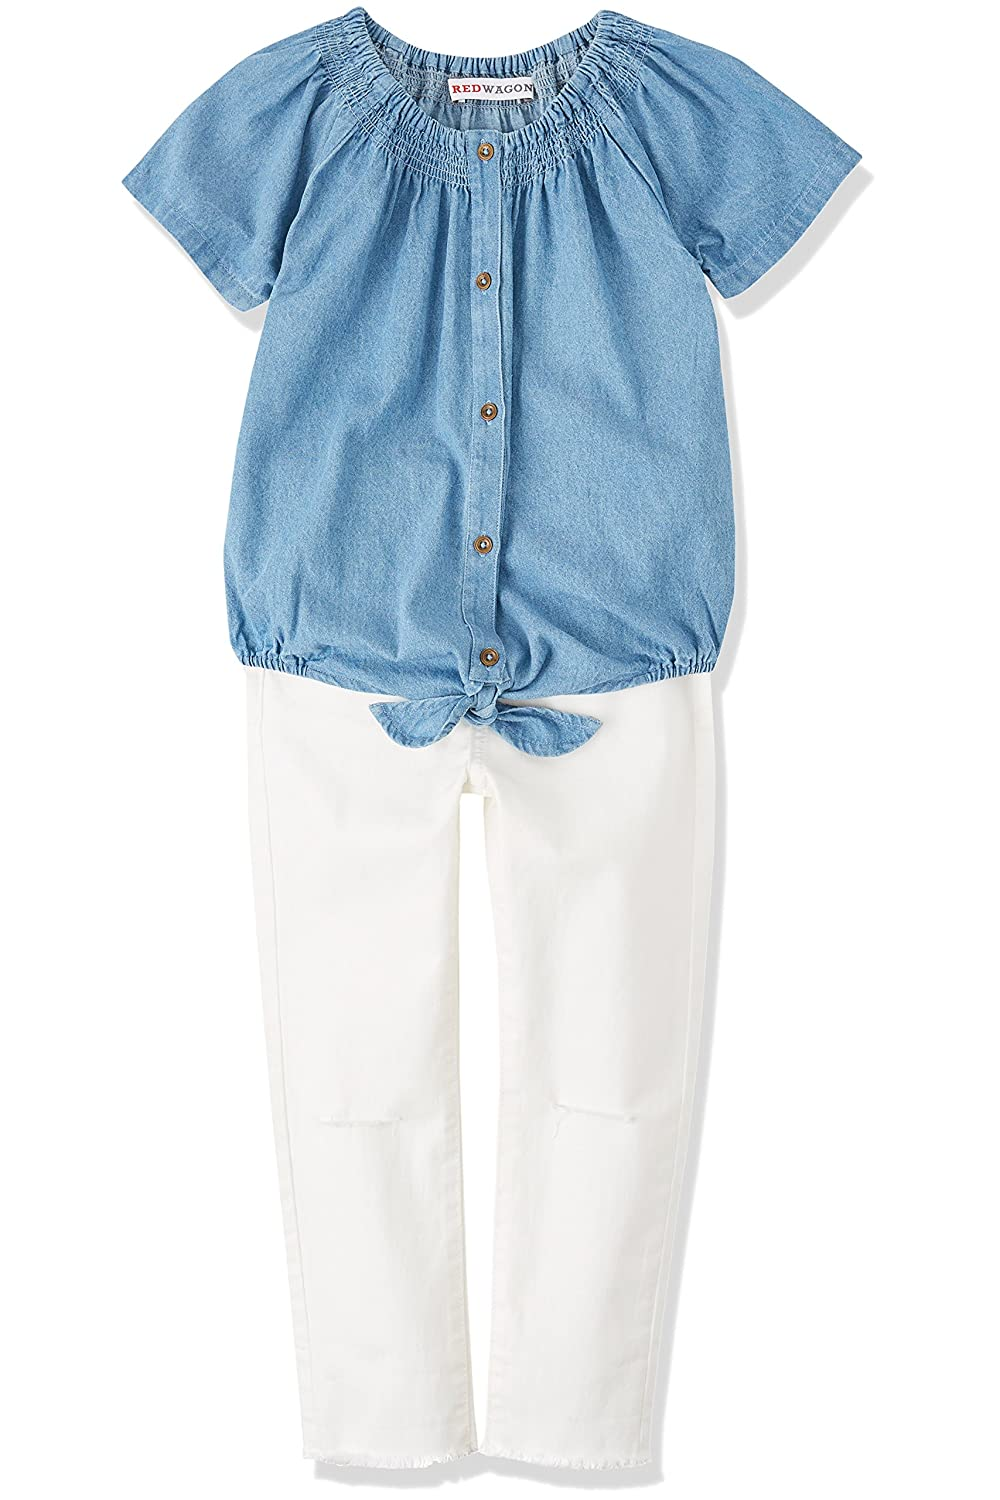 RED WAGON Girl's Chambray Tie Knot Short Sleeve Blouse: Amazon.co.uk:  Clothing